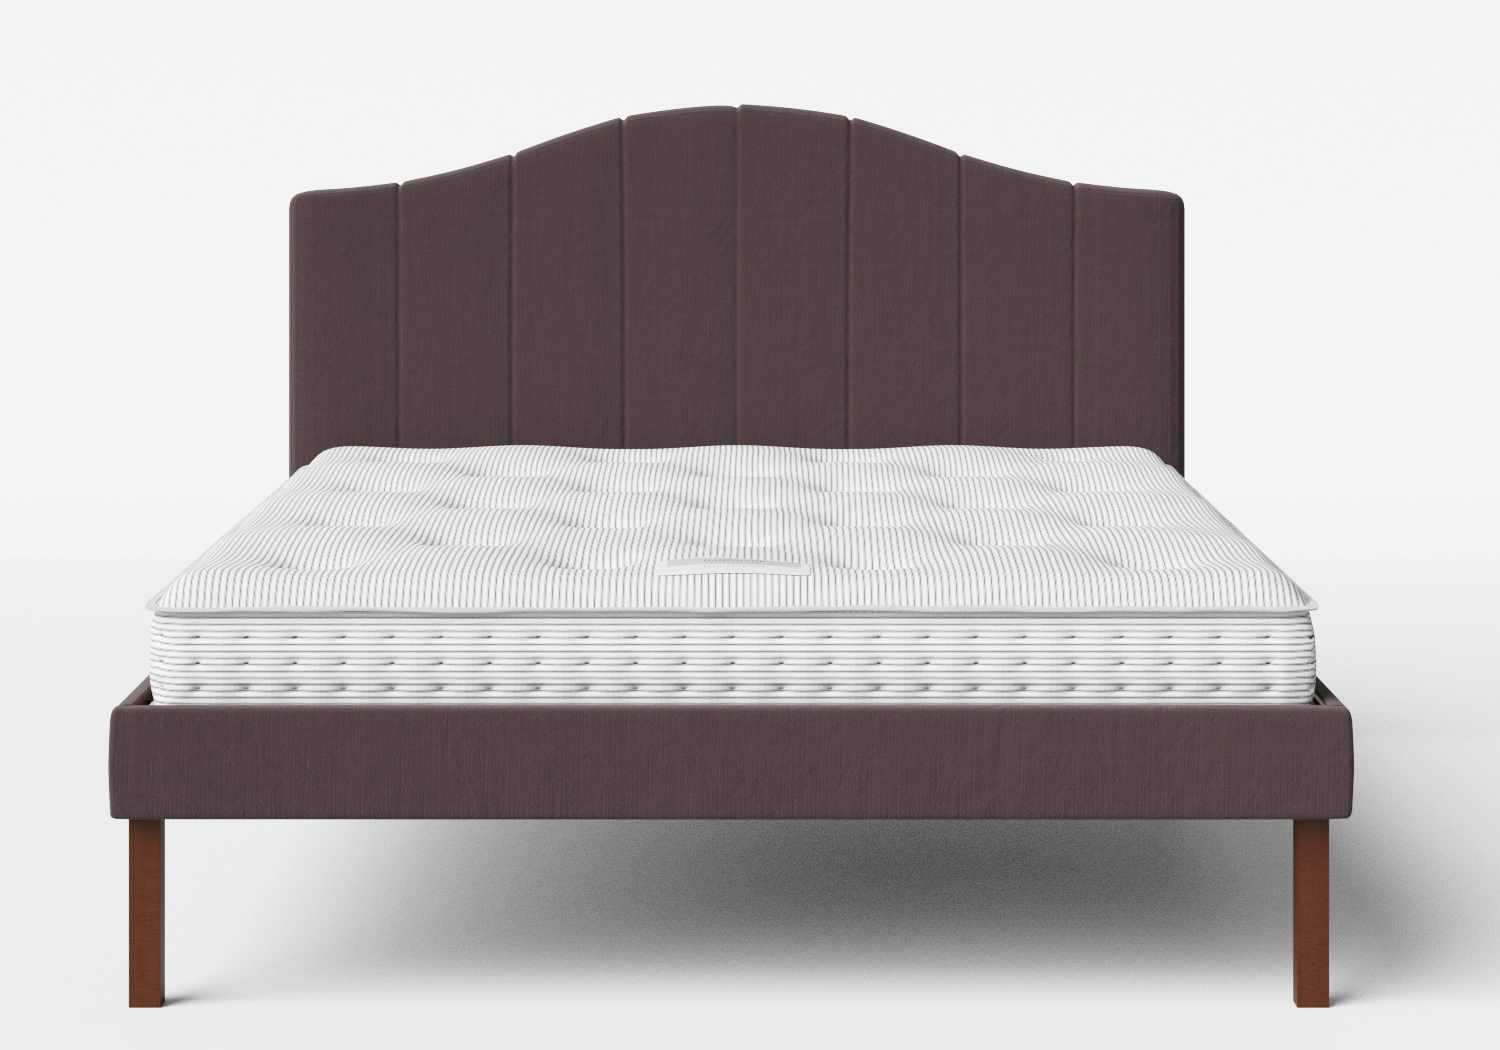 Yoshida Upholstered Bed with Aubergine fabric shown with Juno 1 mattress